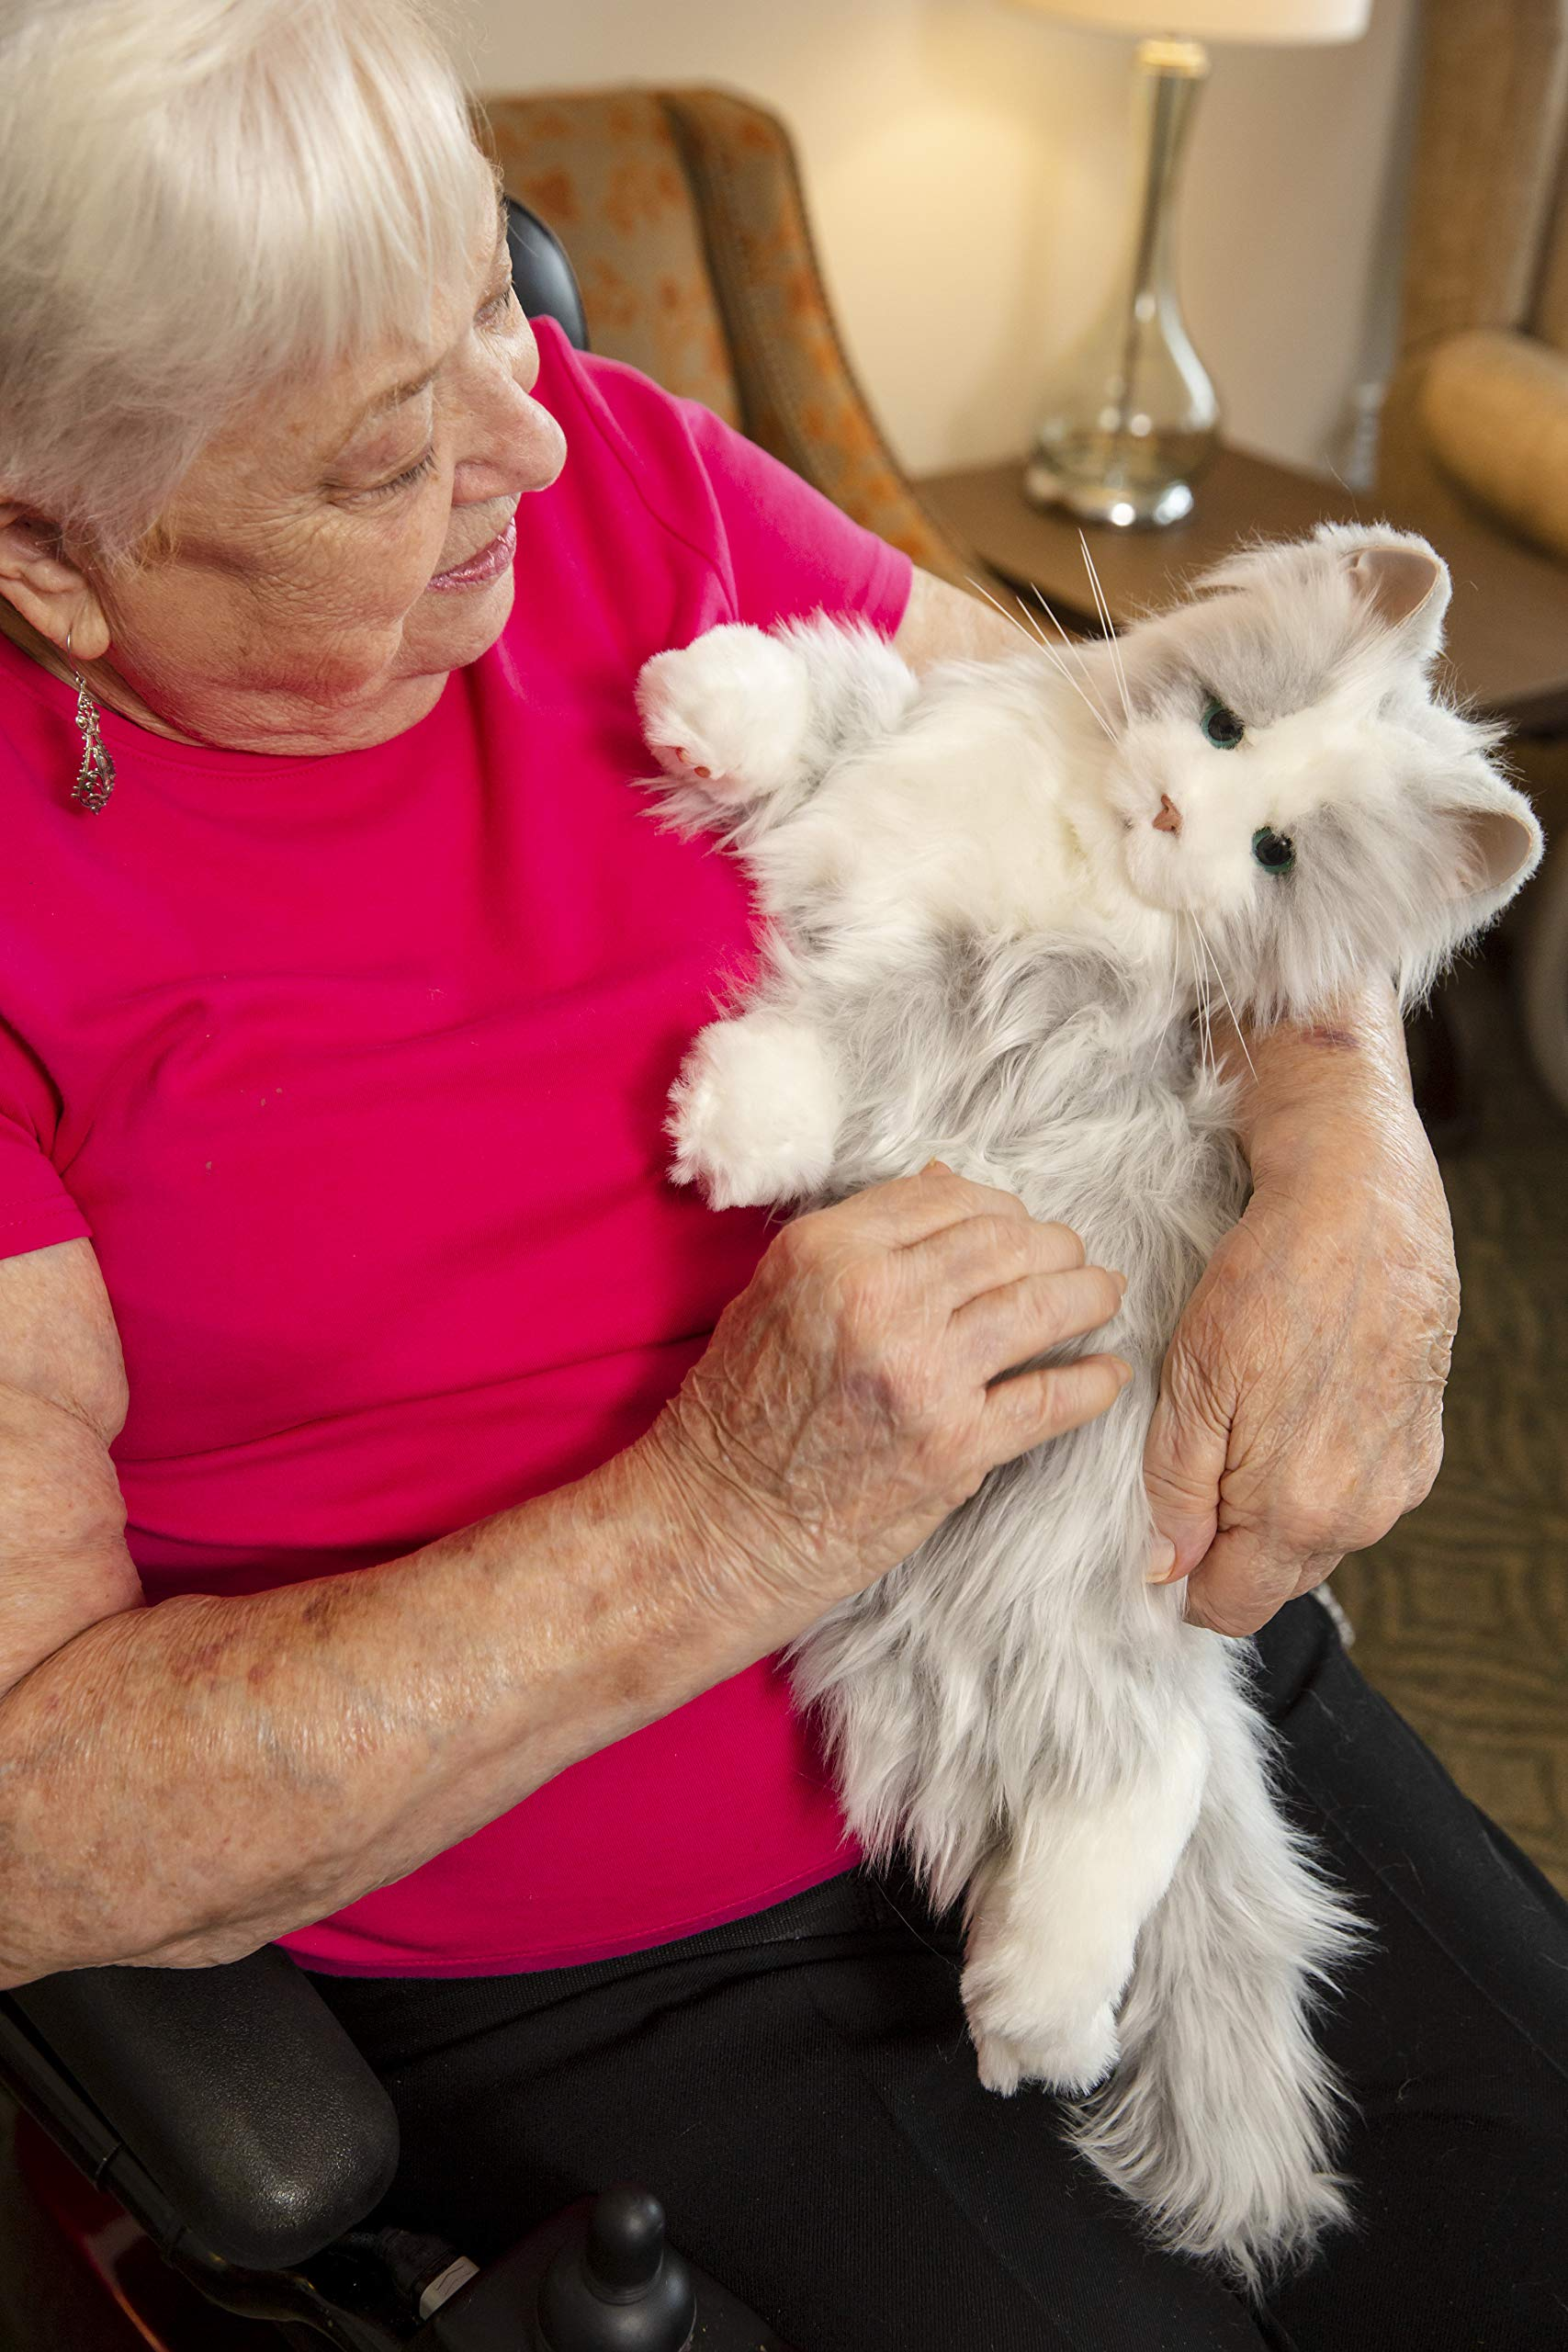 Joy for All Robotic Reclining Silver Grey Cat - for Ages 2 to 102 by Memorable Pets (Image #3)